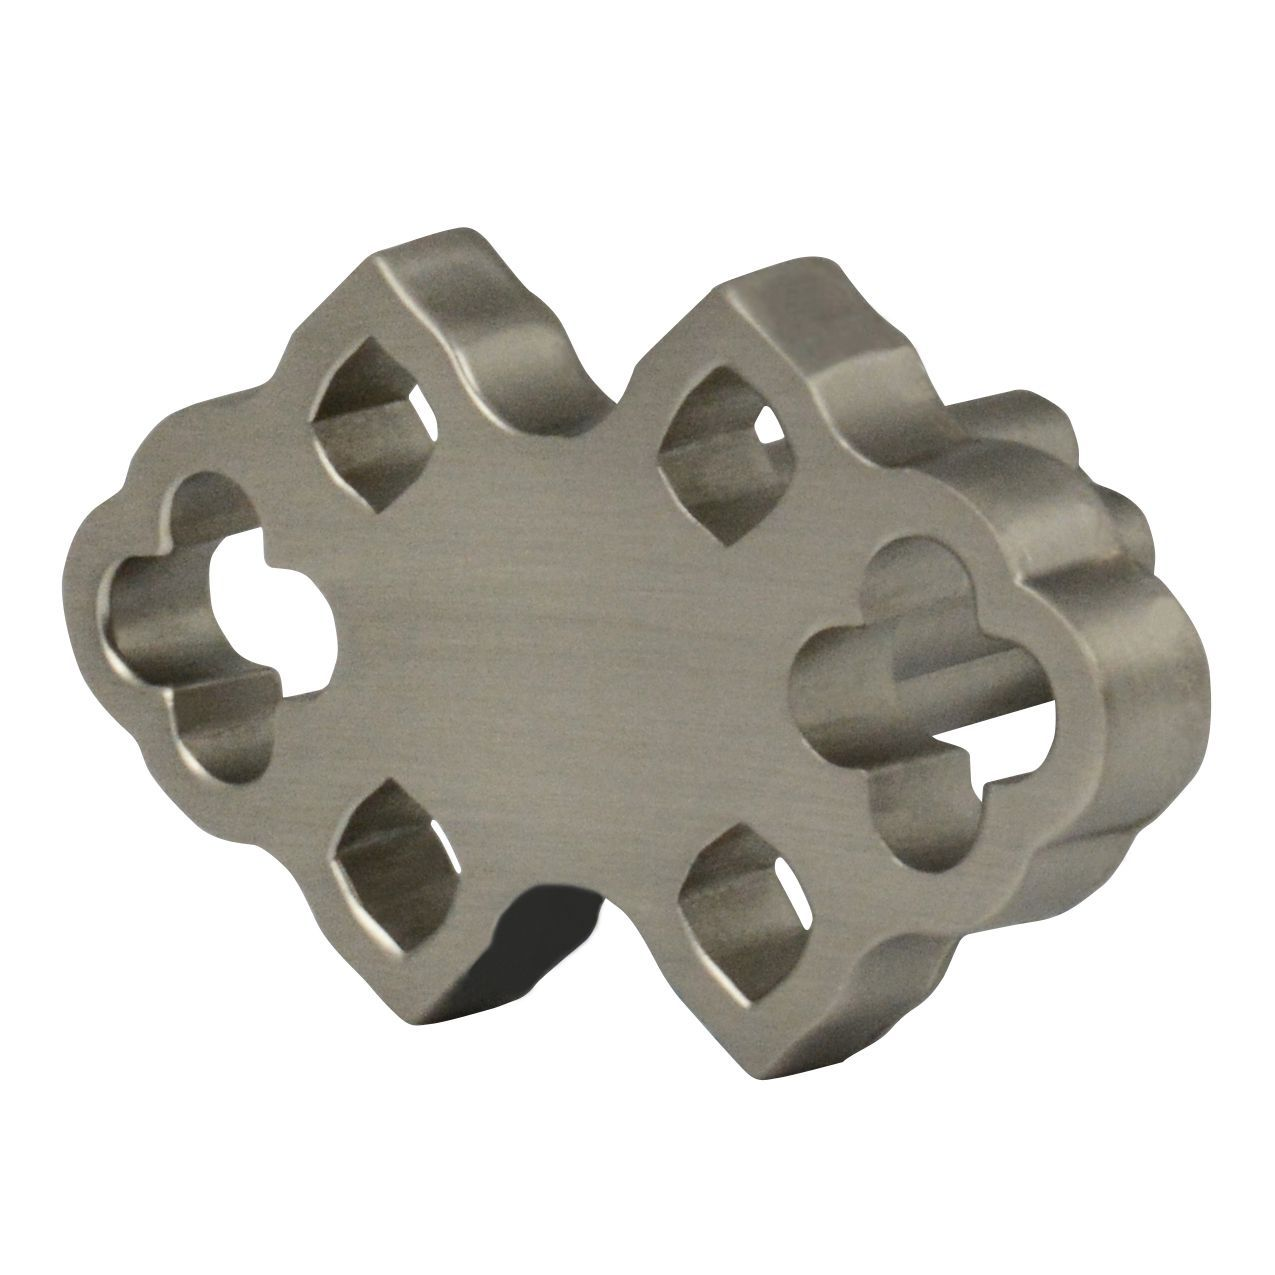 Bohemian satin nickel drawer knob with one and thirteen sixteenths inch length